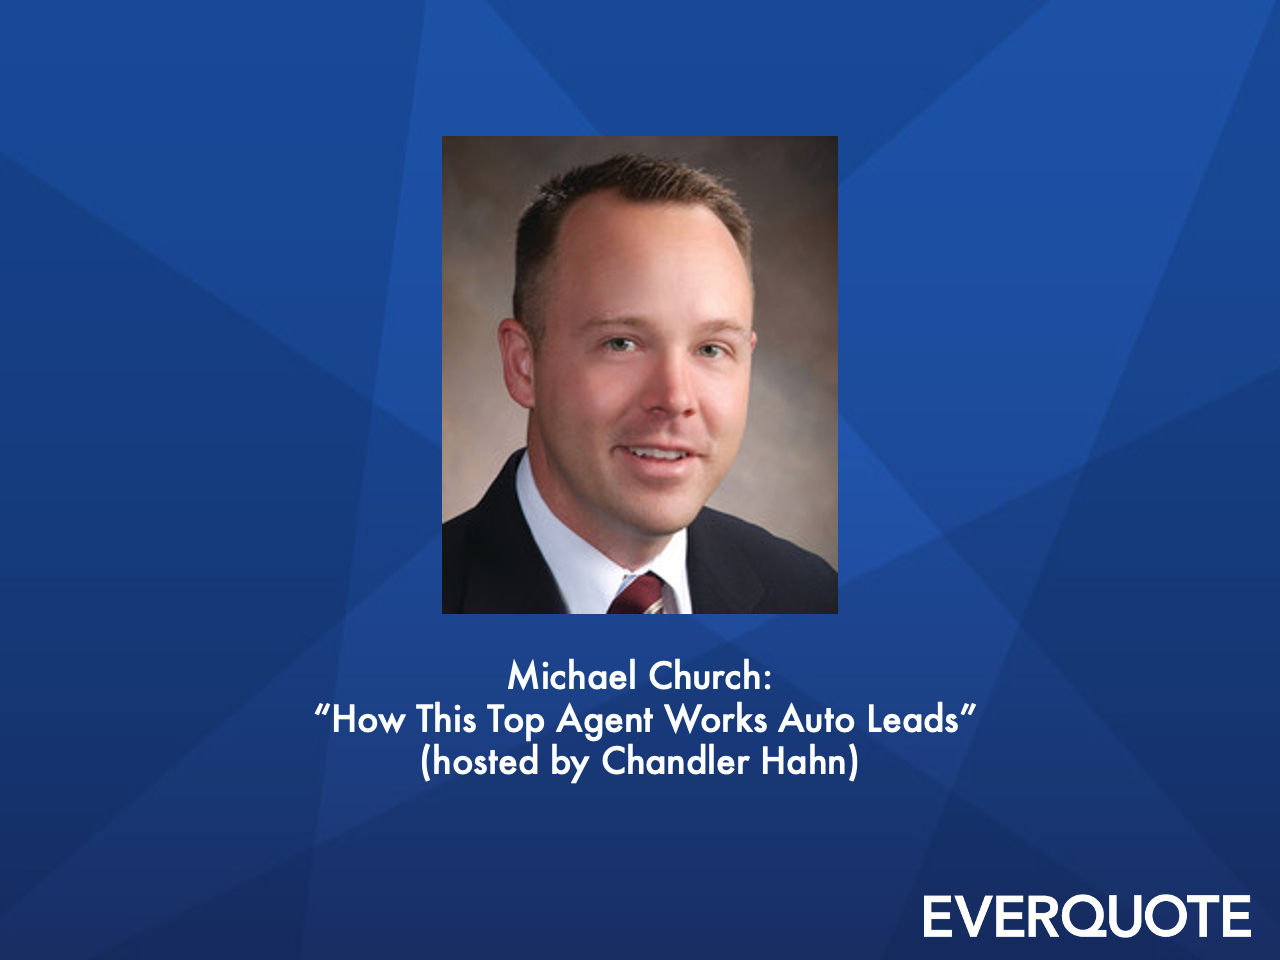 How This Top Agent Works Auto Leads with Michael Church